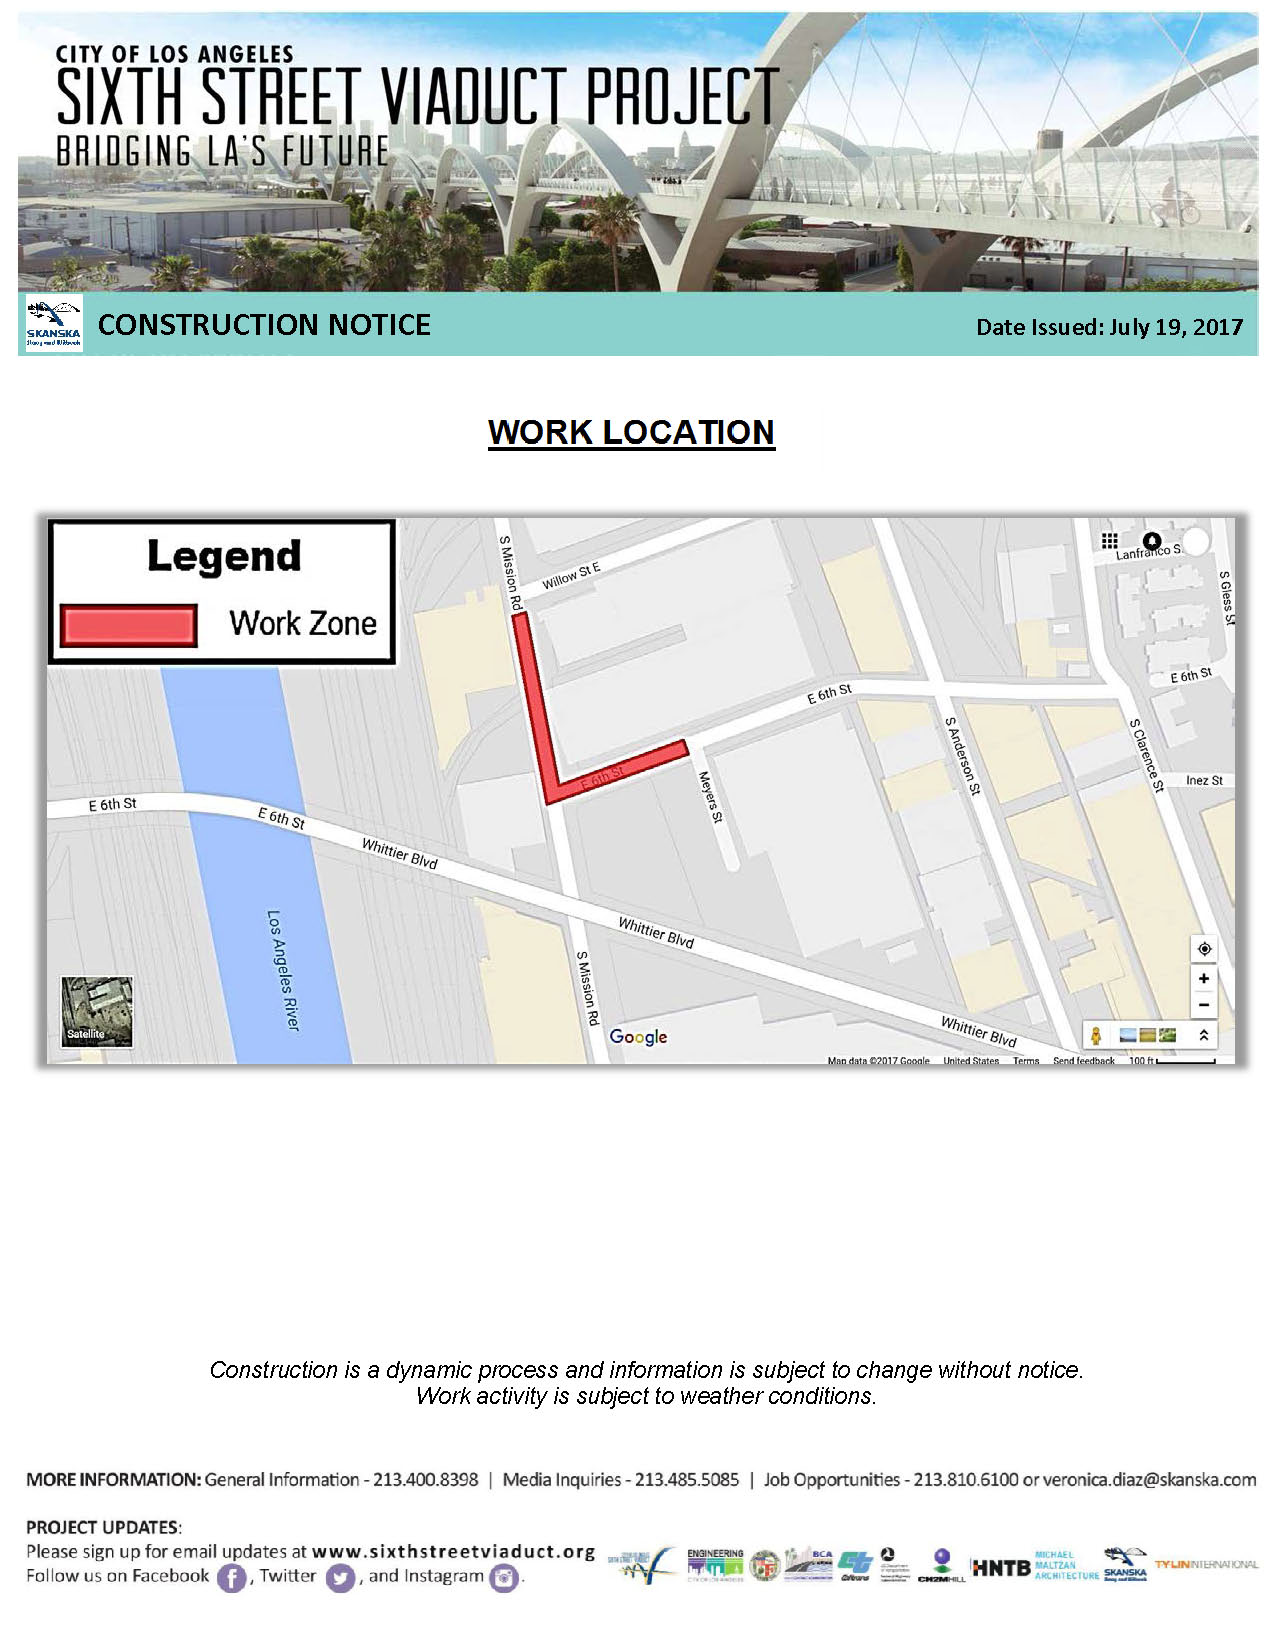 2017-07-19_SSW_Construction_Notice_-_Utility_Relocation_on_Mission_Rd_and_E_6th_St_Page_2.jpg